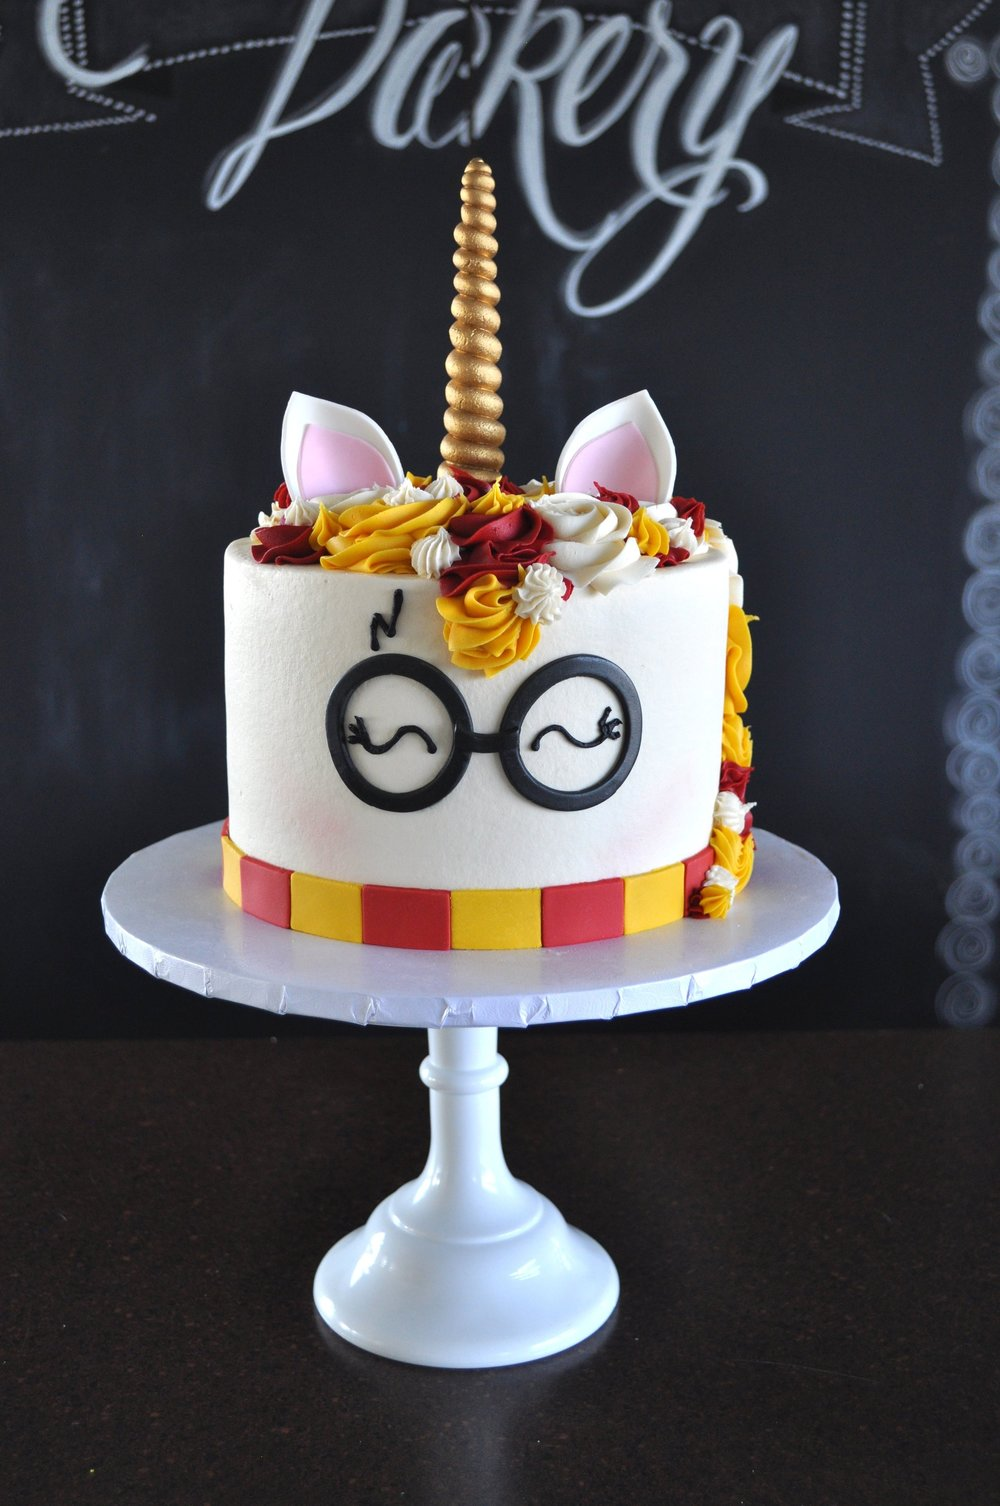 custom-cake-harrypotter-unicorn-sugarbeesweets.jpg